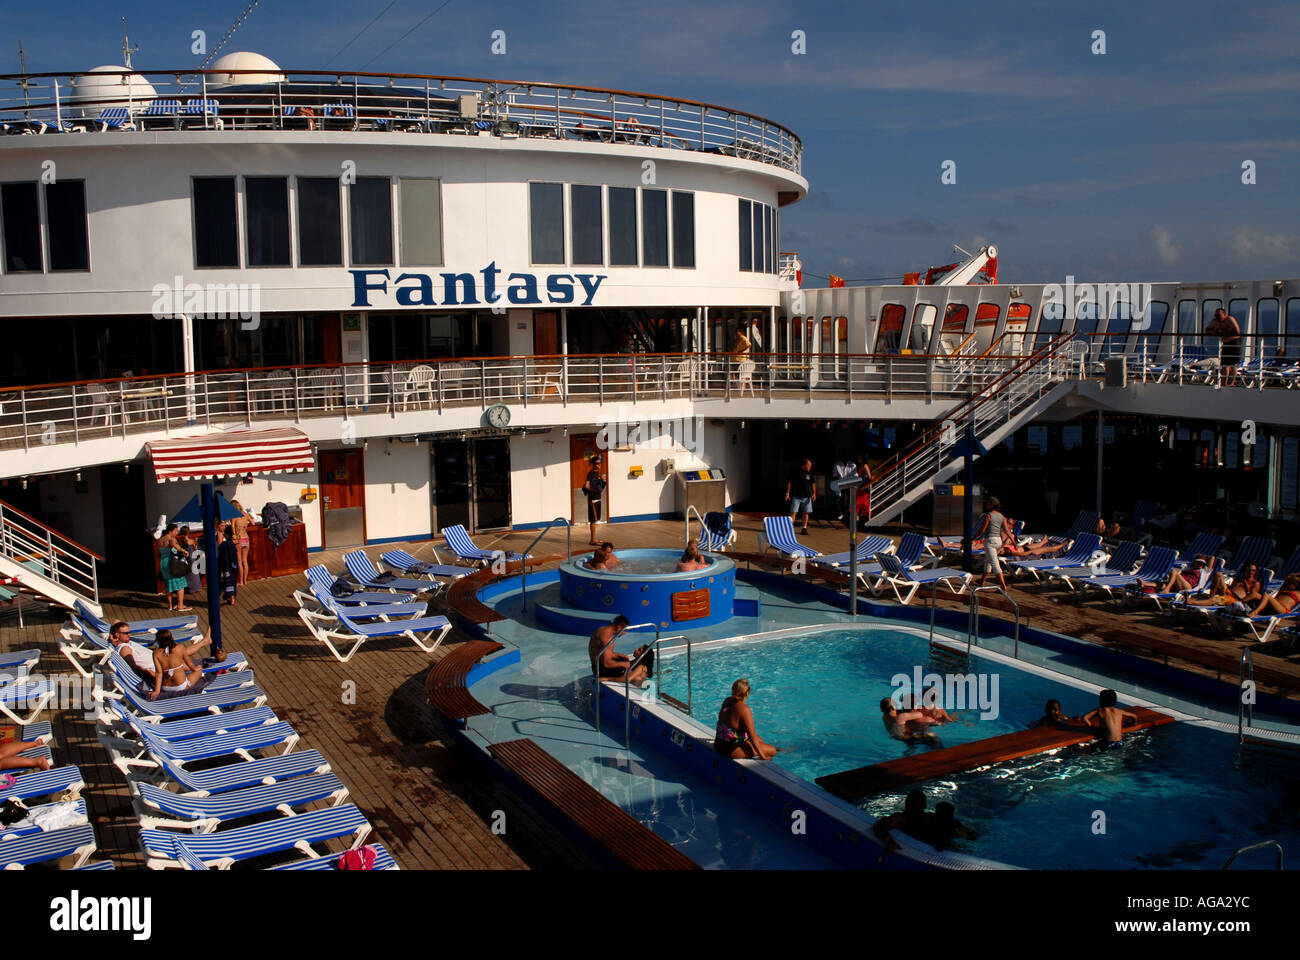 Cruise Ship Carnival Fantasy Swimming Pool Blue Lounge Chairs Stock Photo Royalty Free Image